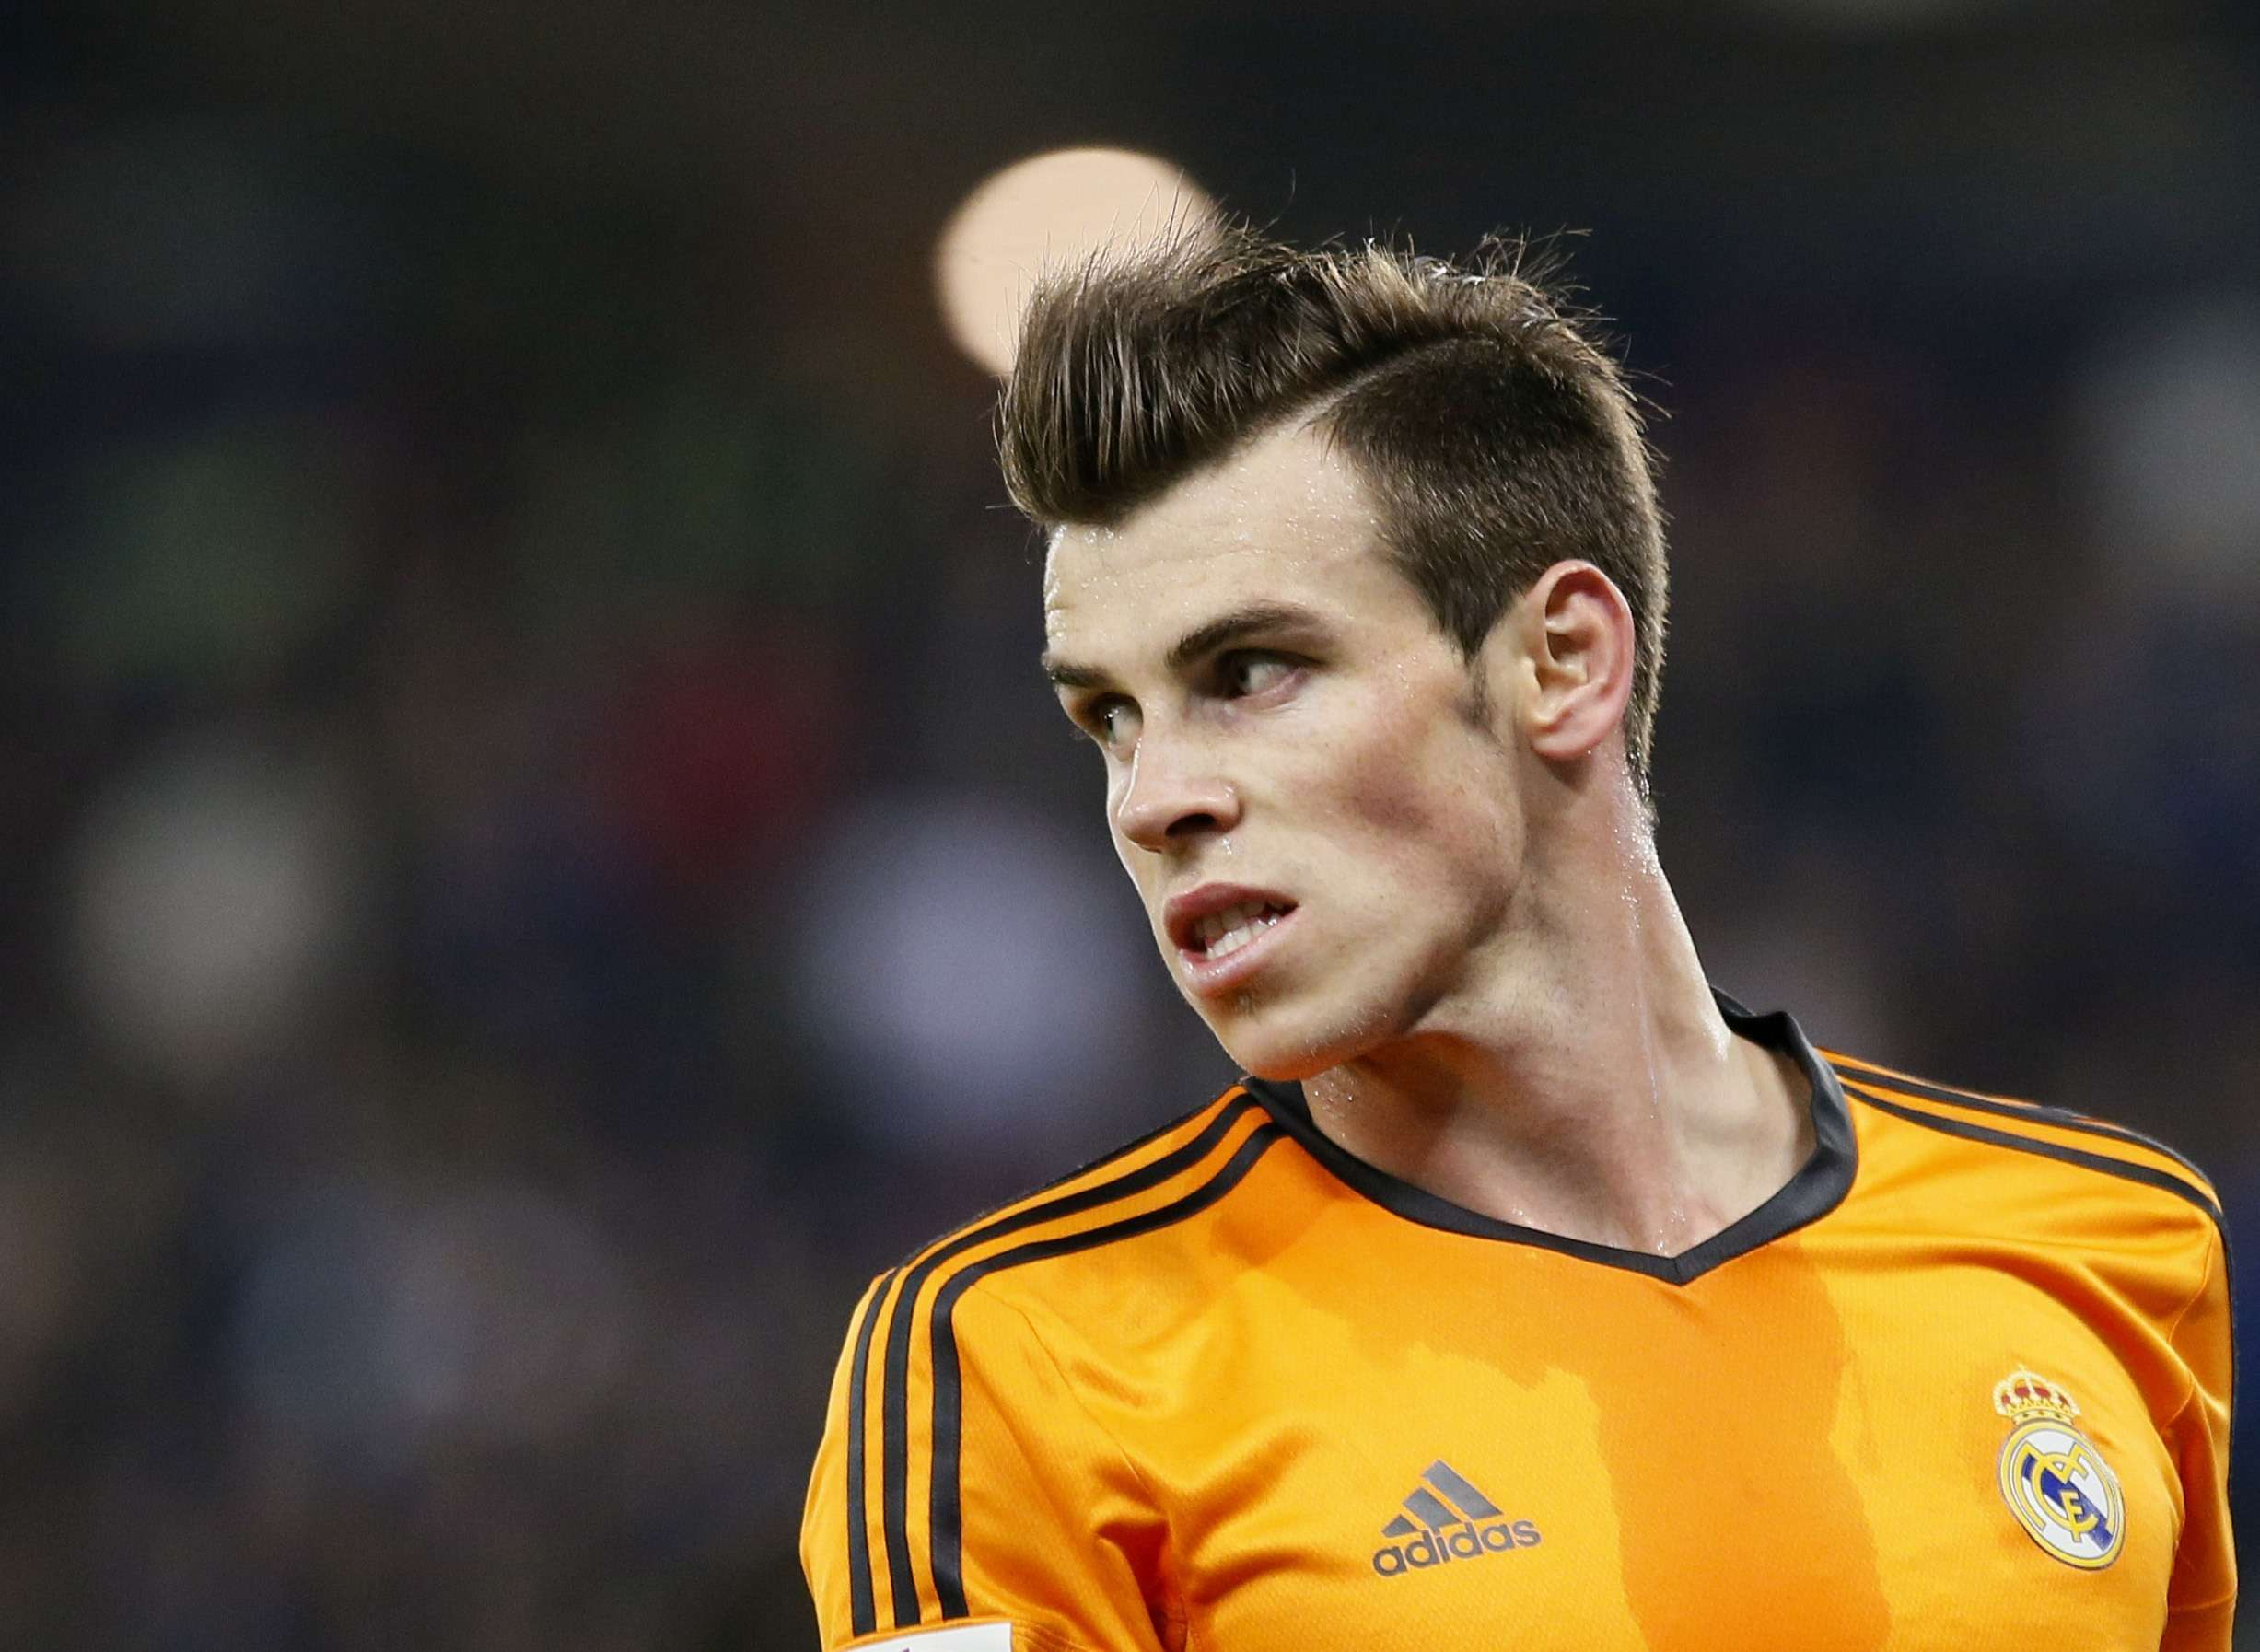 Gareth Bale Wallpapers 2016 HD Wallpaper Cave